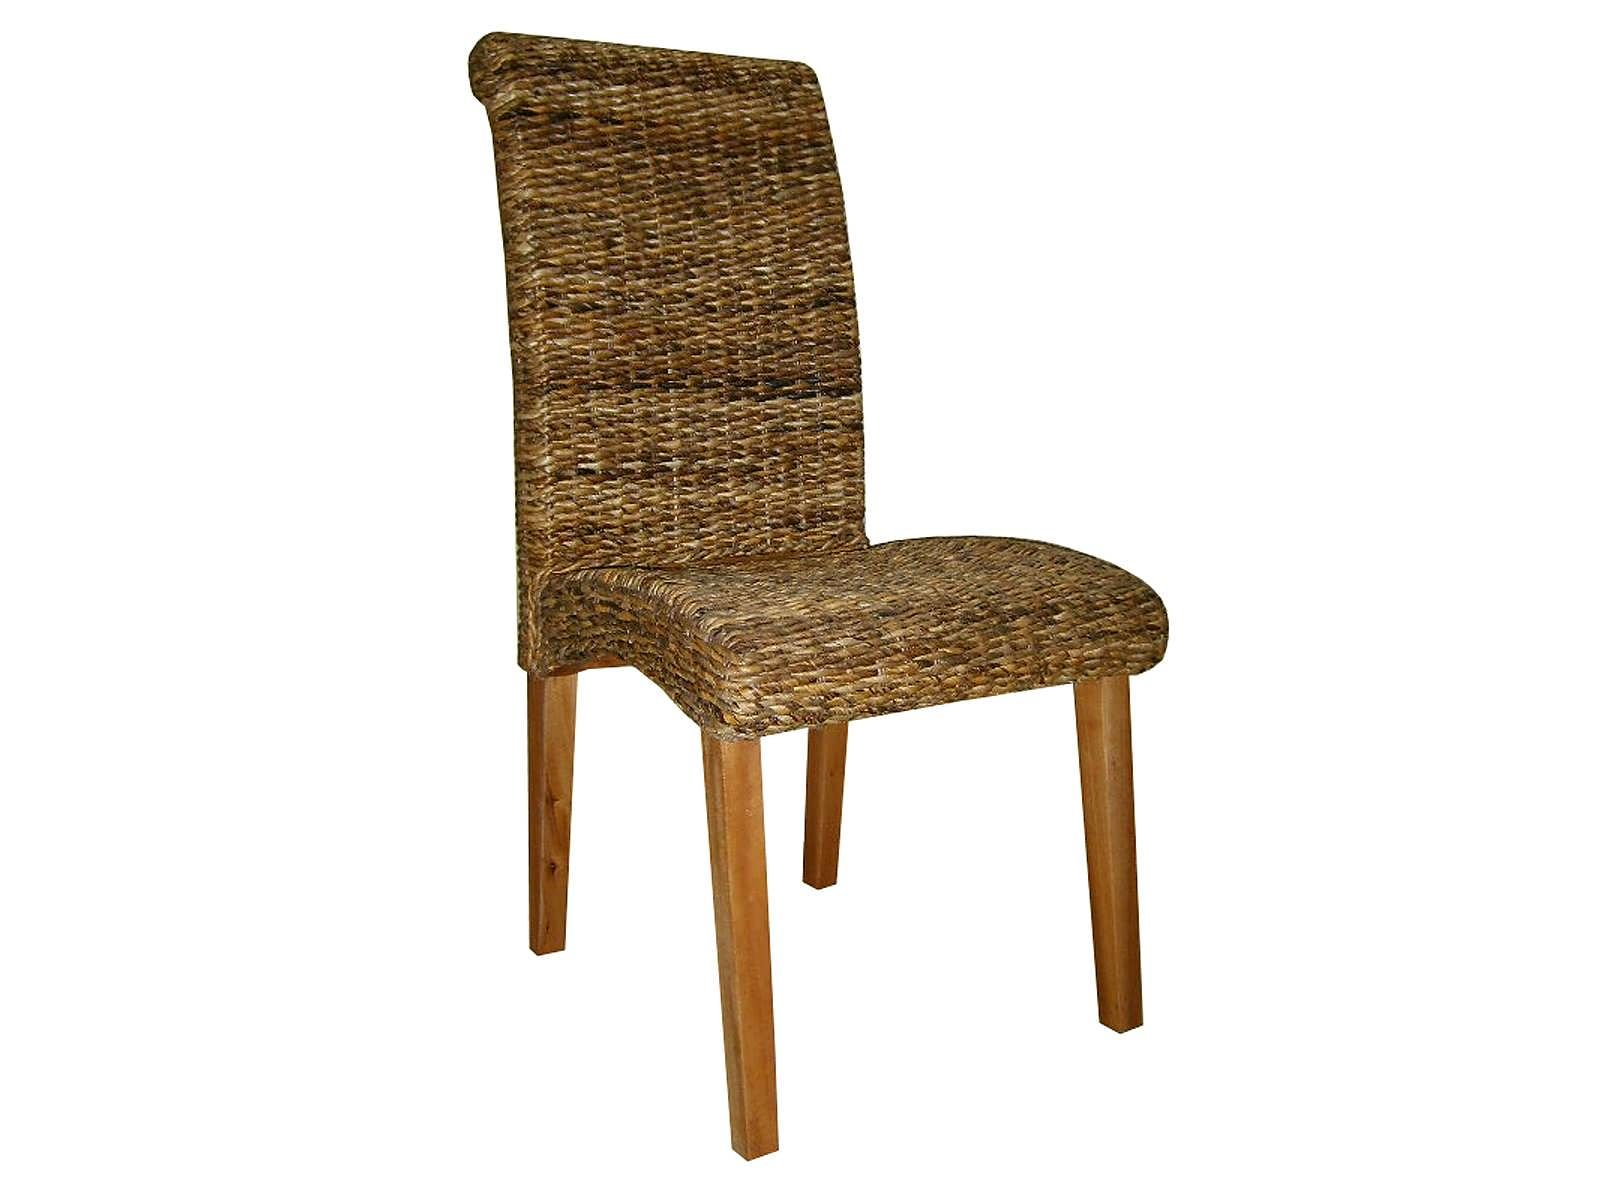 Details About Abaca Rattan Wicker Dining Chair Indoor Conservatory Furniture With Teak Legs